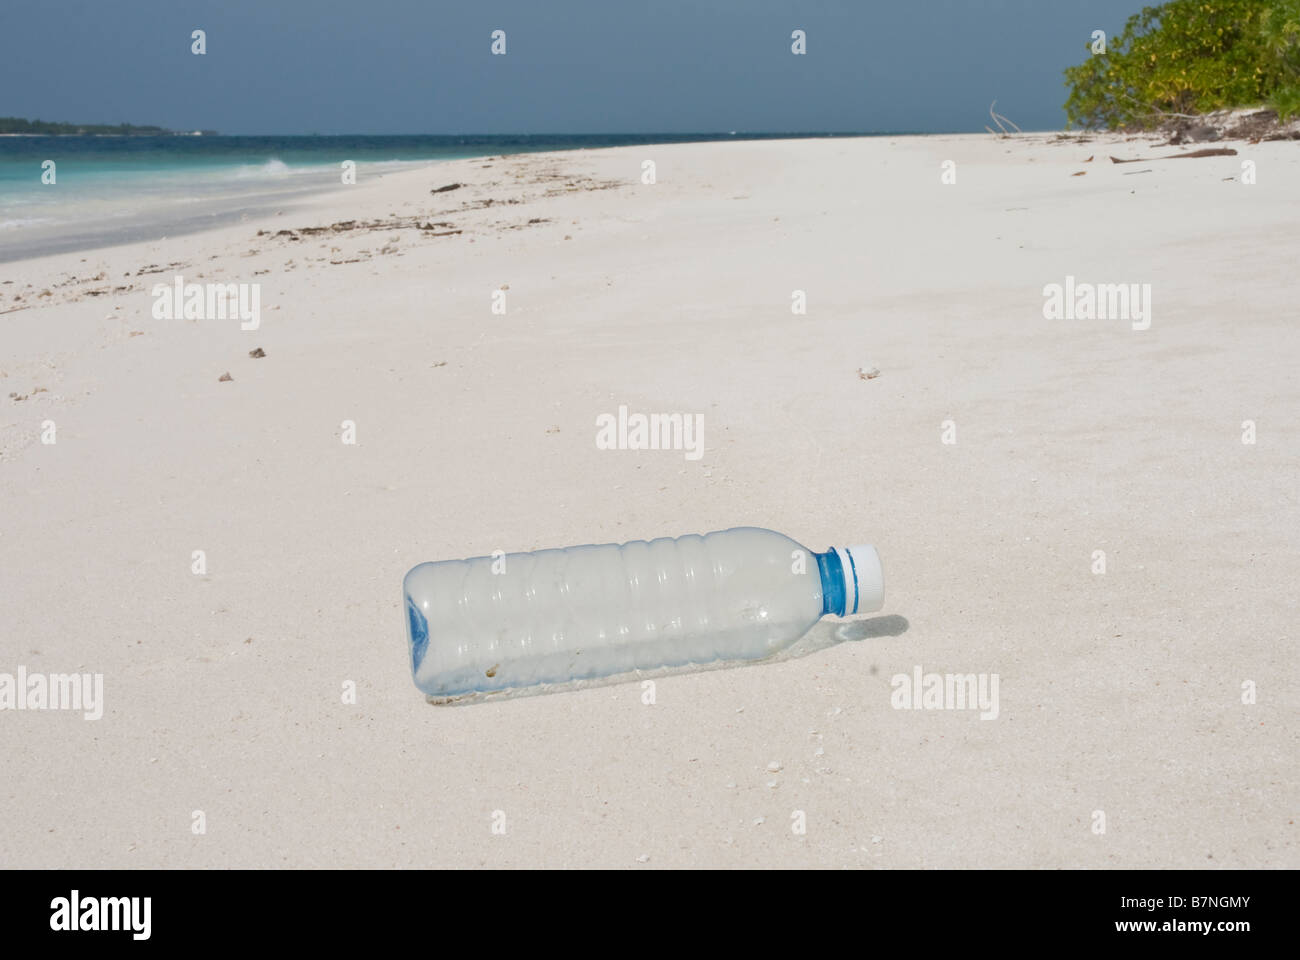 Plastic bottle washed up on a tropical beach in the Maldives. - Stock Image